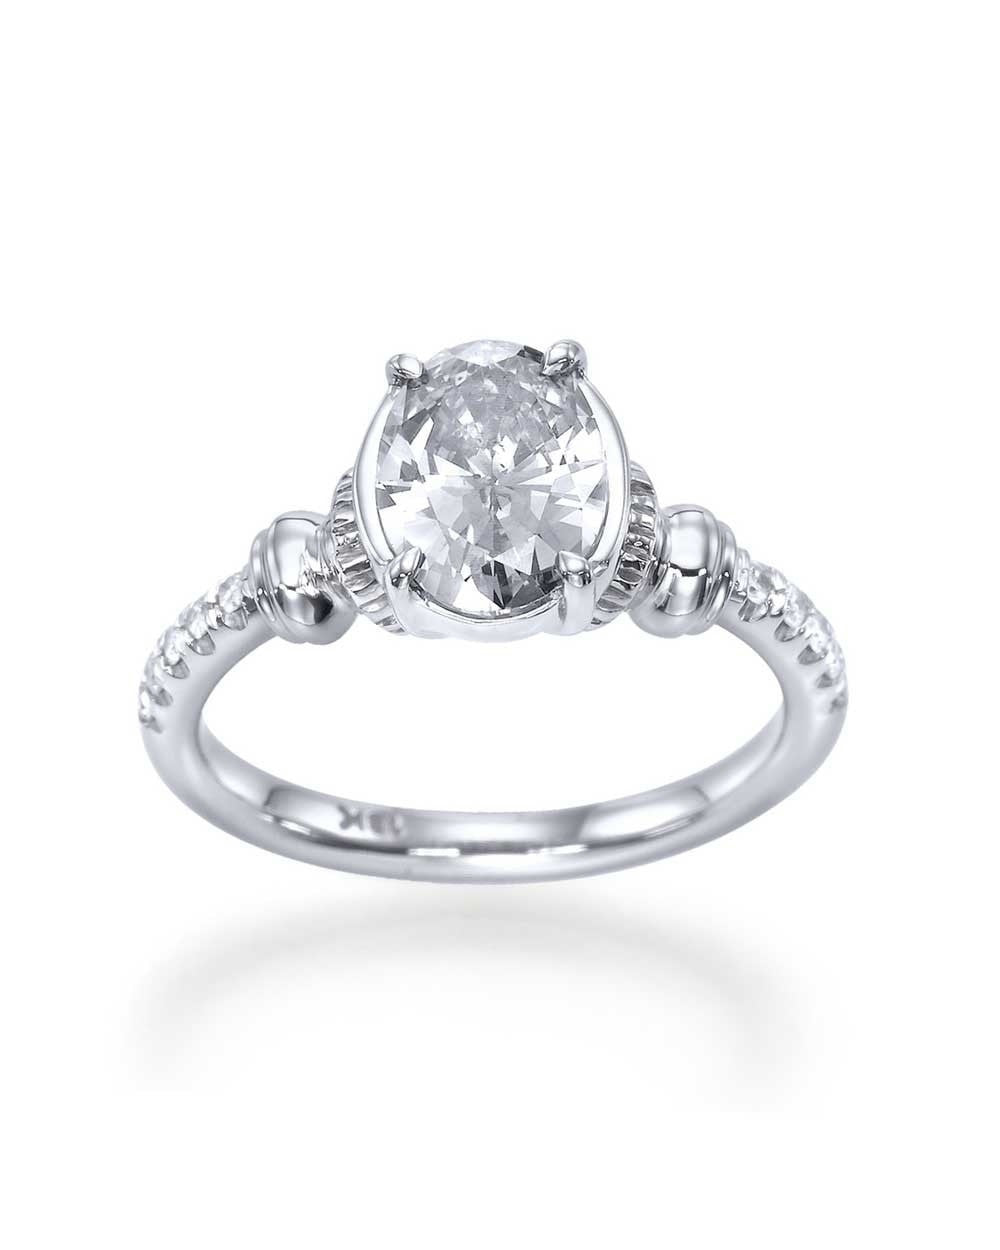 Engagement Rings 115 Carat Oval Cut Engagement Ring  Vintage Style  With Diamonds